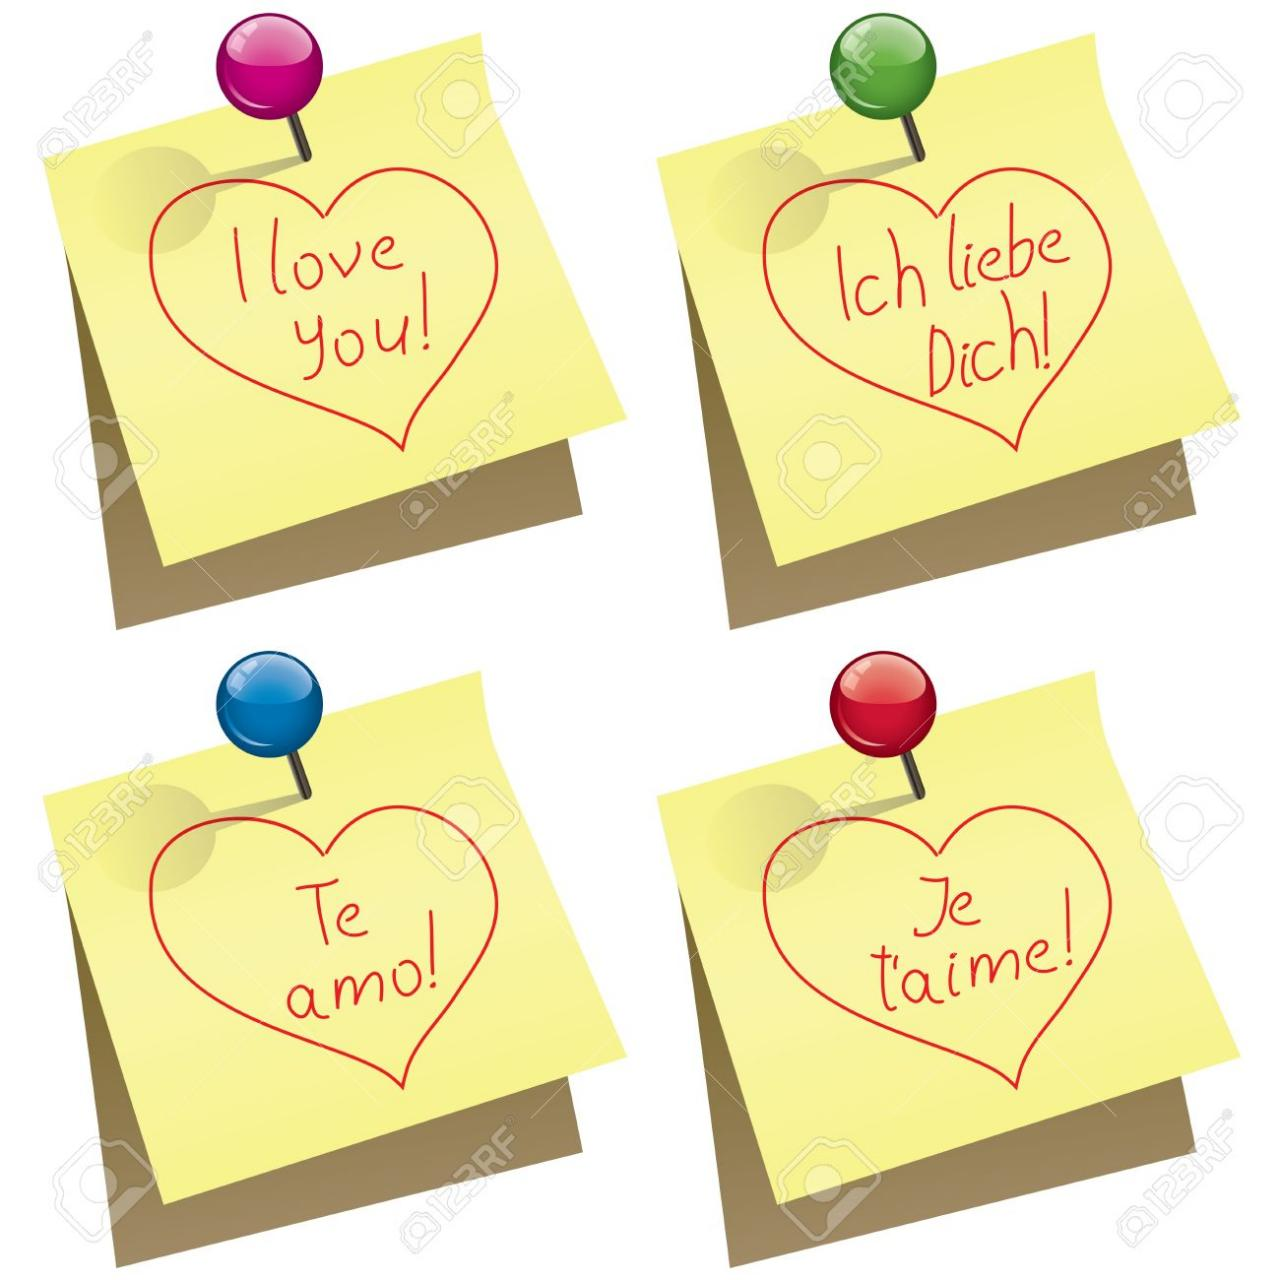 Vector Vector Yellow Paper Notes With Push Pin And I Love You Words In English German